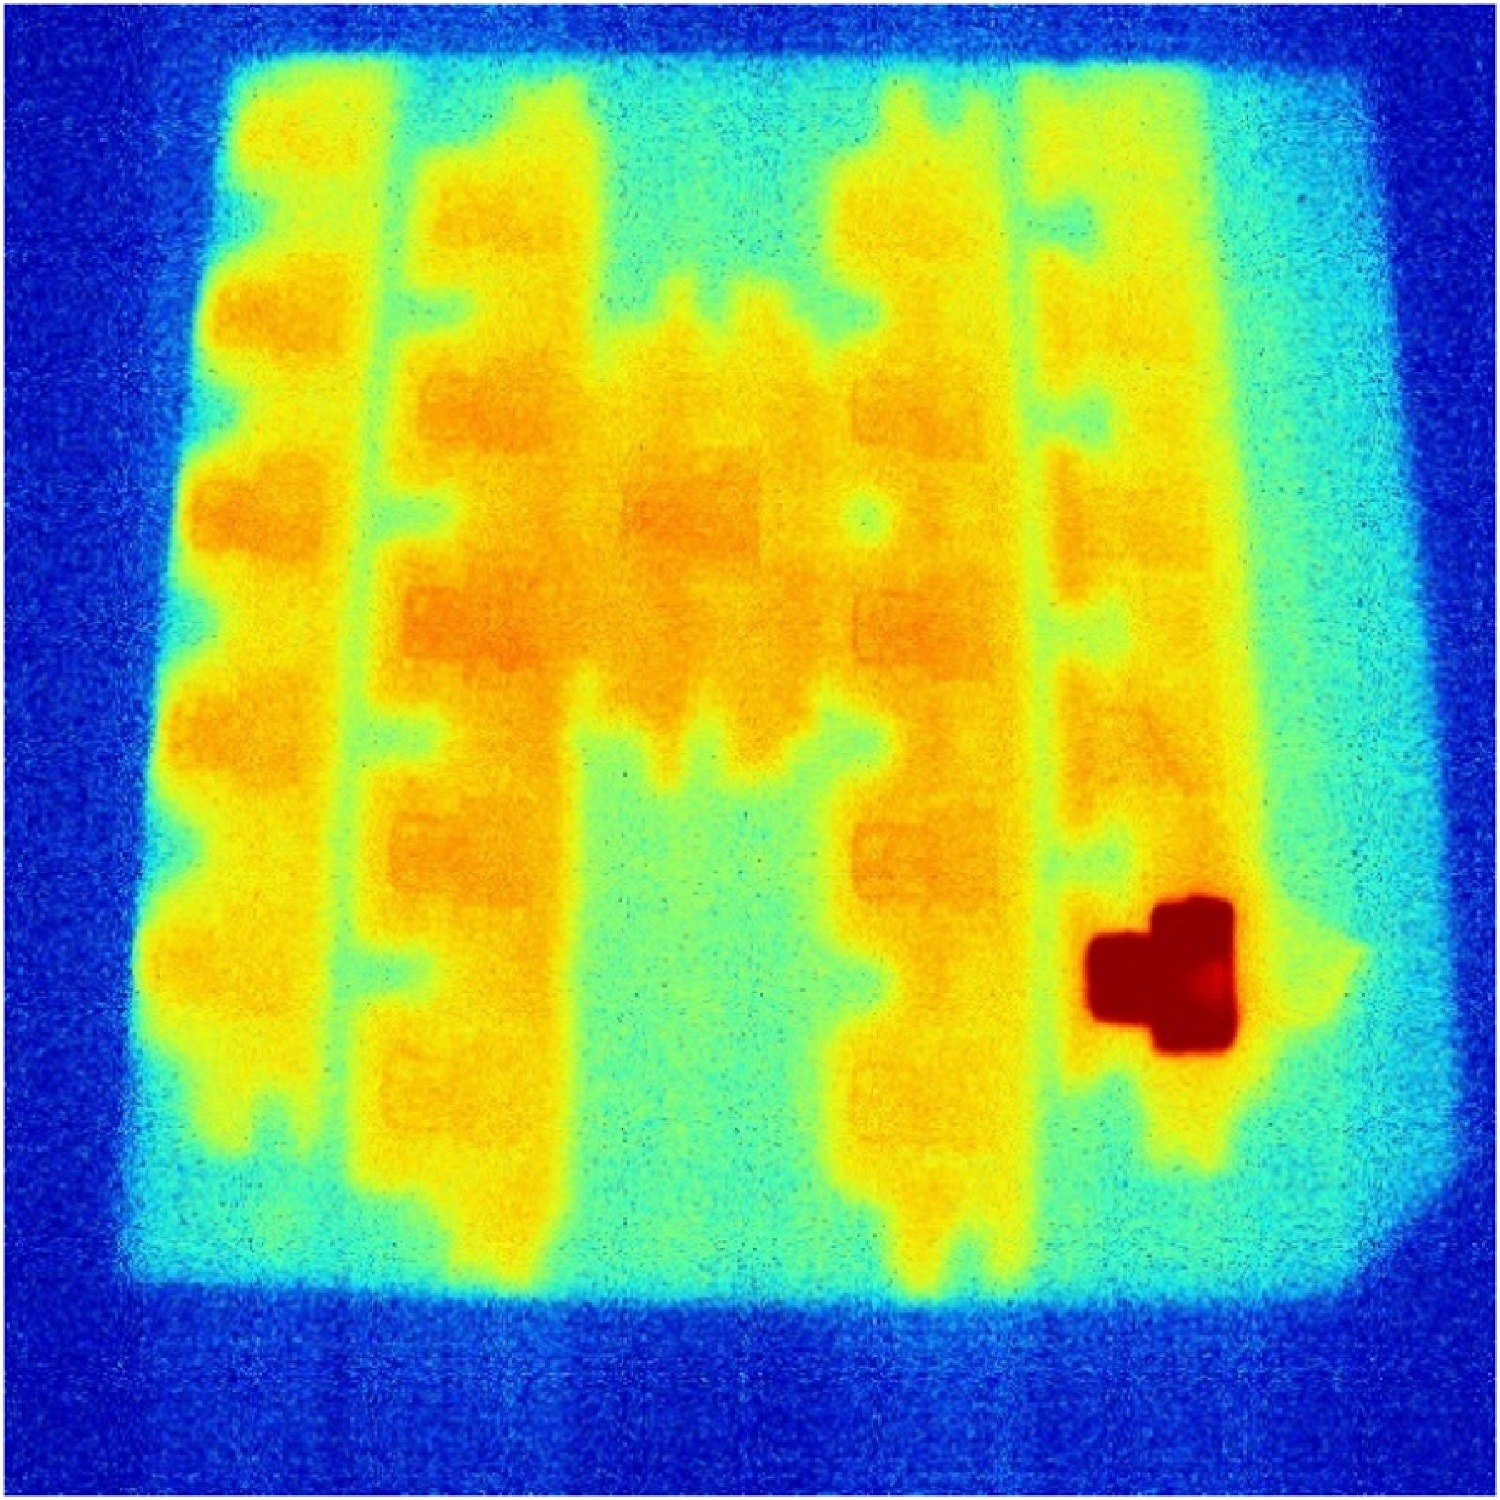 'T' Shaped test pieces showing the effect of residual heat from the previous layer. - 'T' Shaped test pieces showing the effect of residual heat from the previous layer.Boone, N., Zhu, C., Smith, C., Todd, I., Willmott, J.R., (2018). Thermal near infared monitoring system for electron beam melting with emissivity tracking. Additive Manufacturing. 22, 601-605.